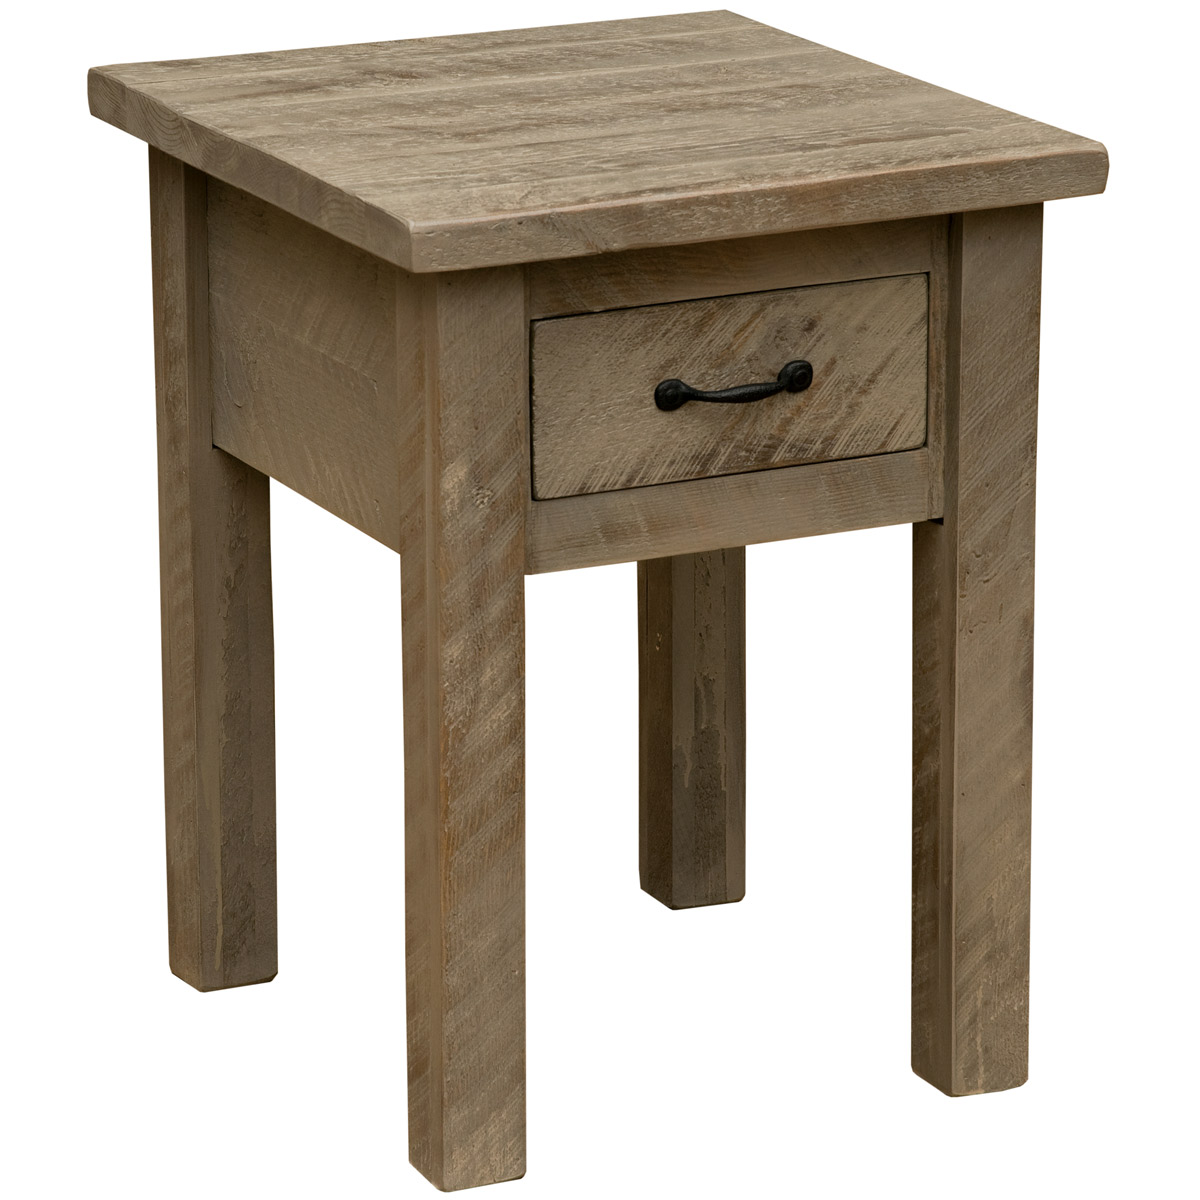 Black Forest Decor Frontier driftwood 1 drawer nightstand